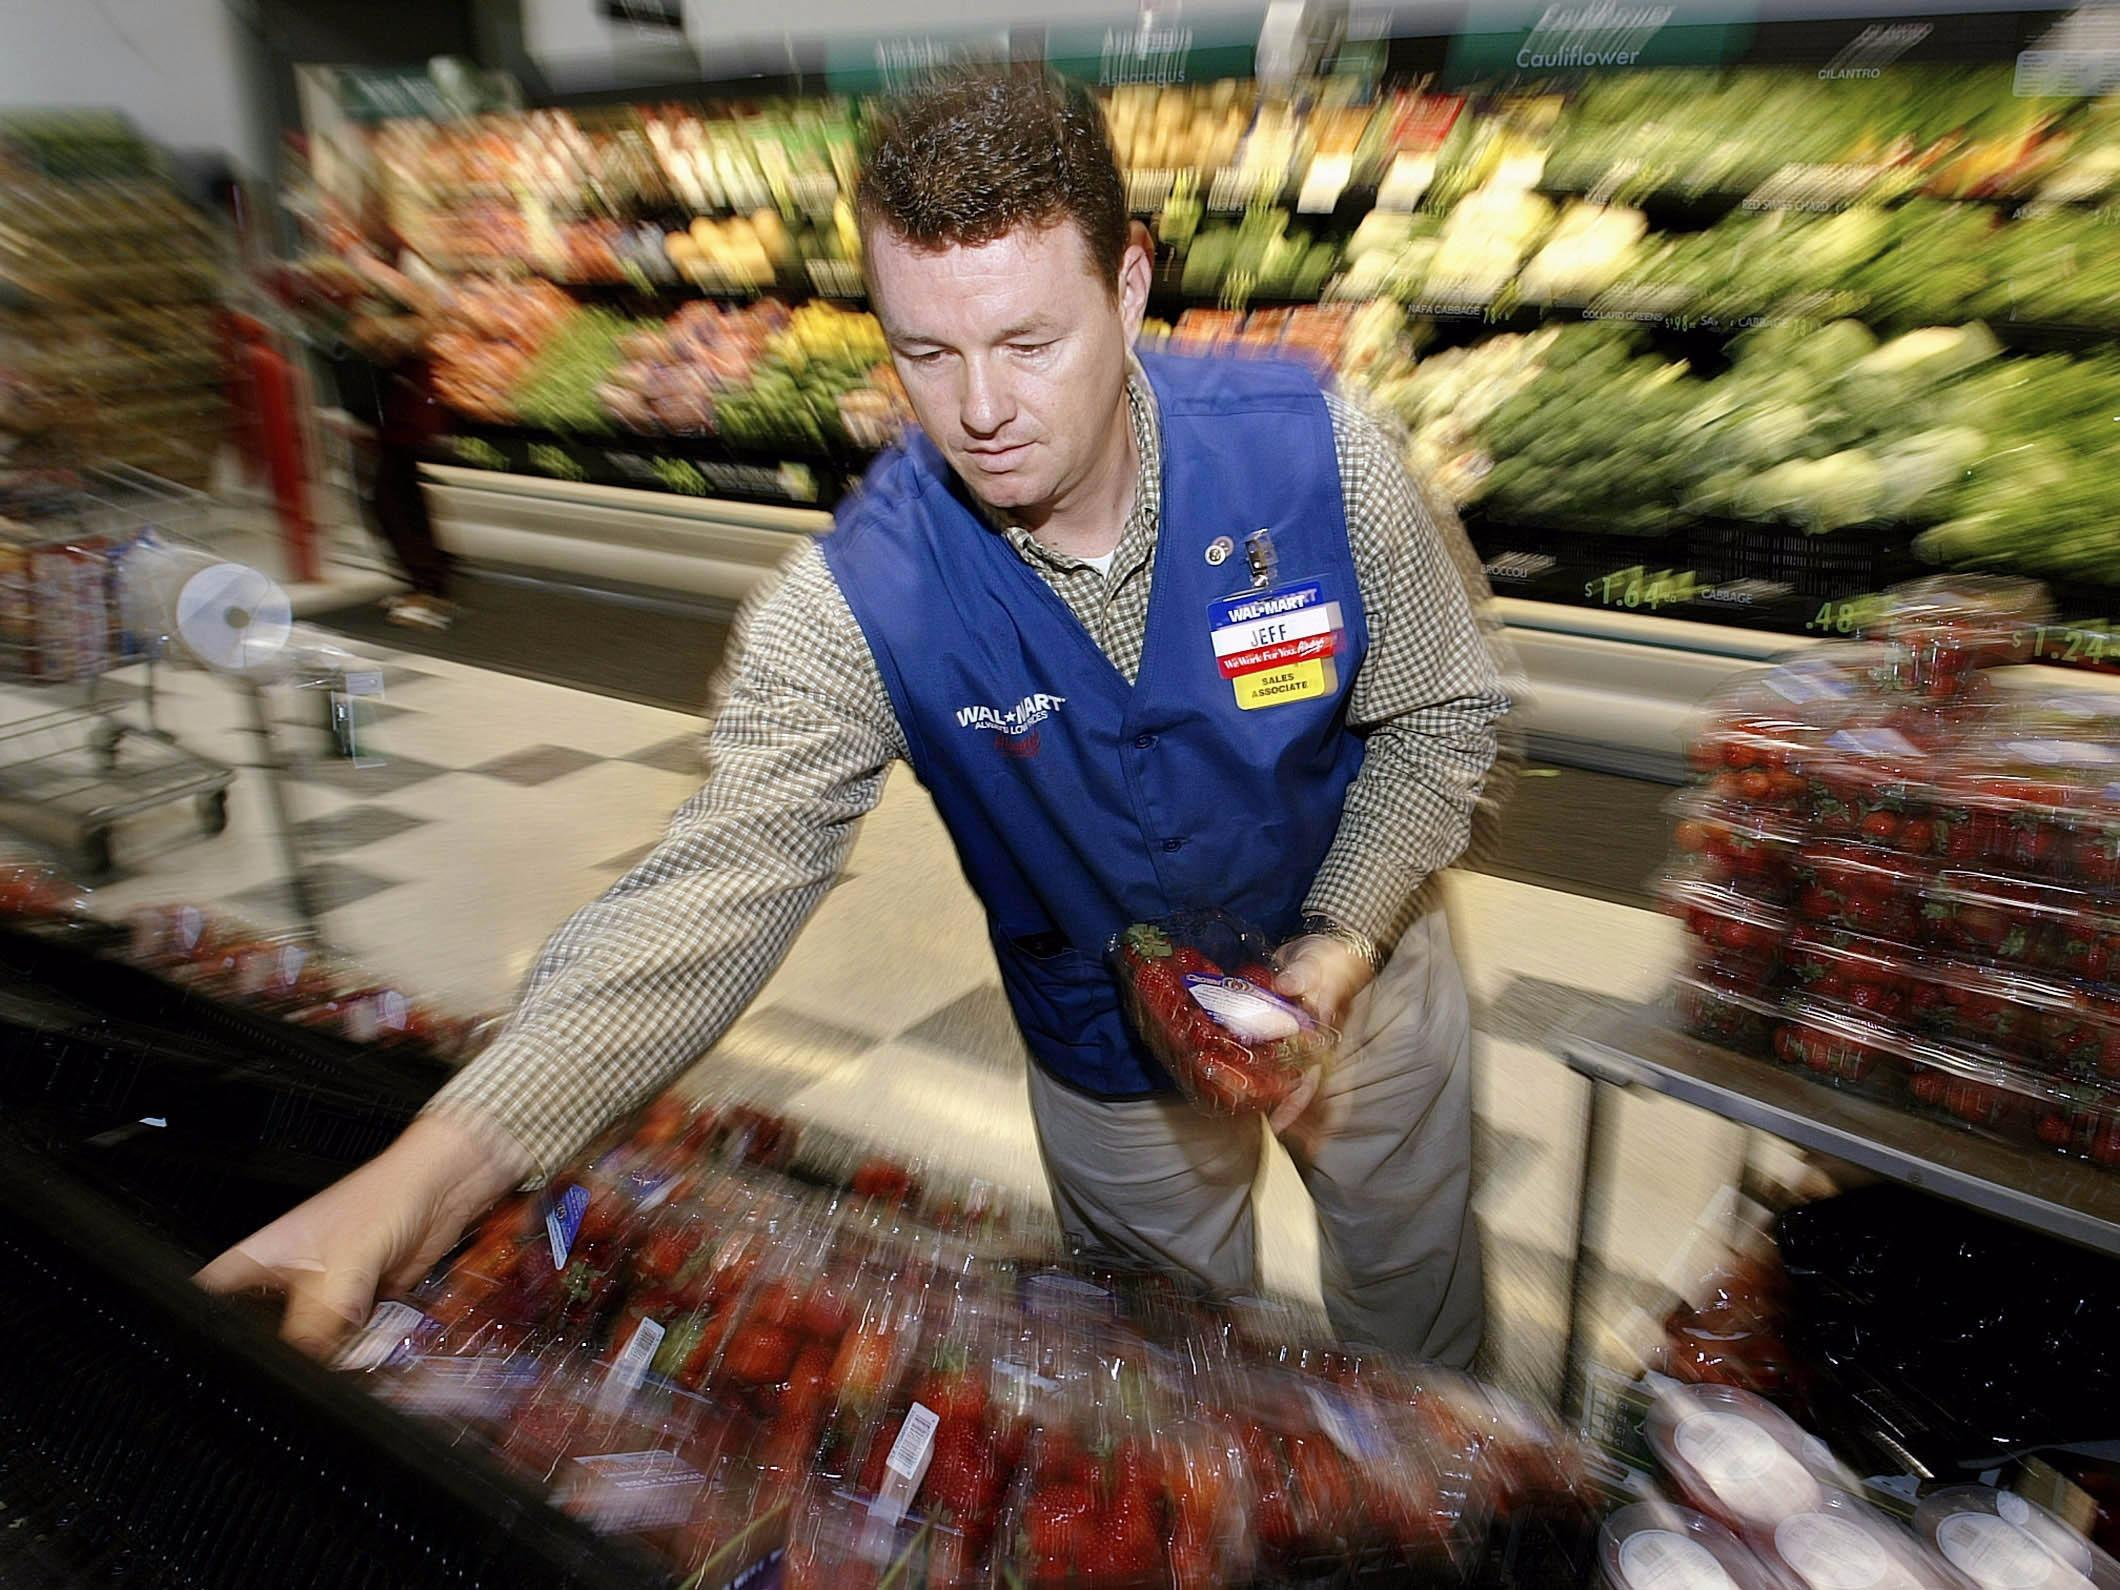 Wal-Mart is cutting workers' hours after pay raise